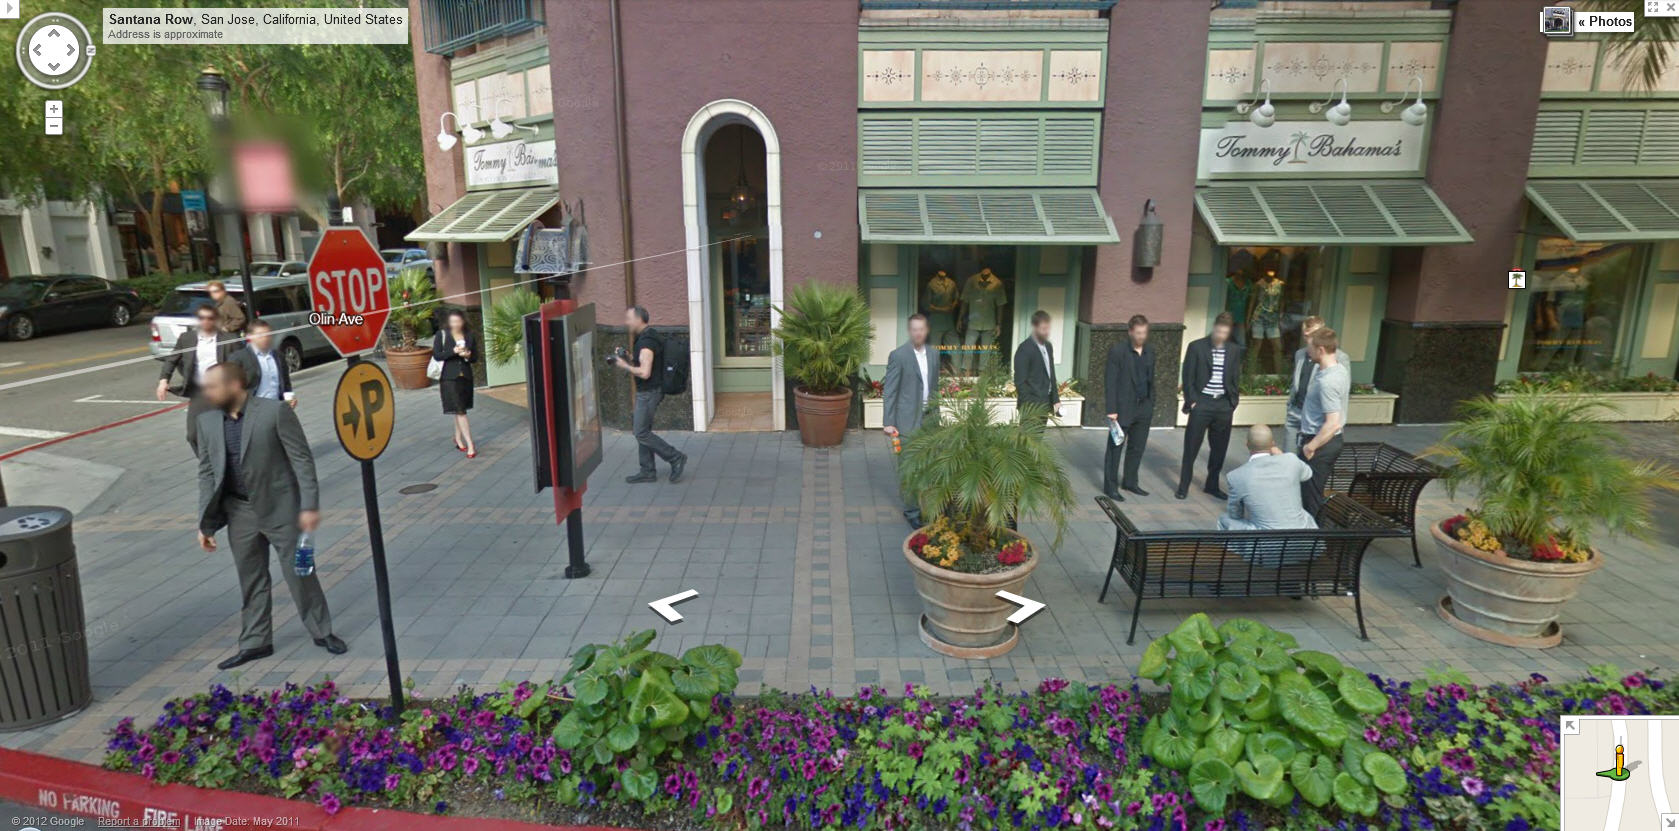 Google Street View captures the Vancouver Canucks in San Jose ... on